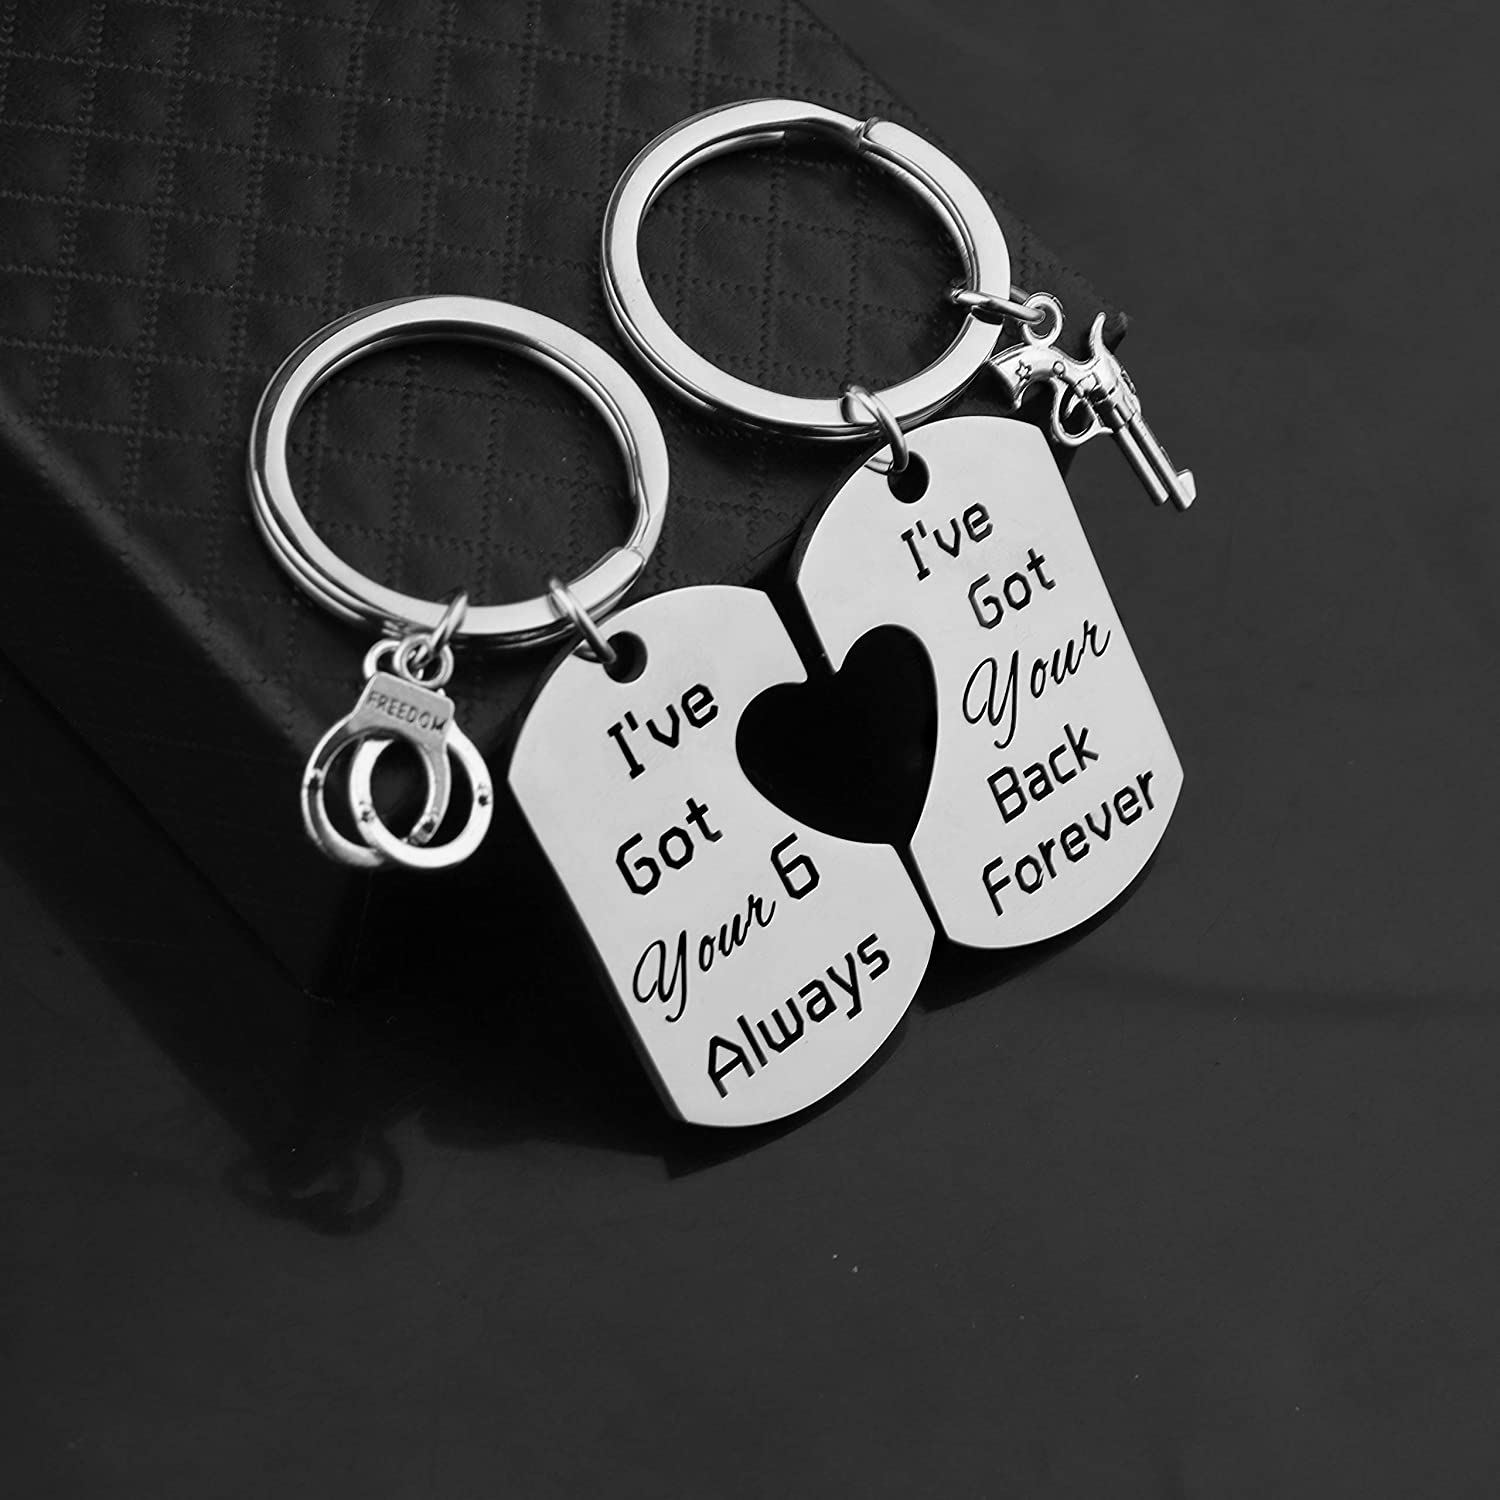 TIIMG Police Gift Ive Got Your 6 Always I Have Got You Back Forever Keychain Military Wife Gift Support Law Enforcement Keyring Sheriff Gift Police Officer Couple Gift